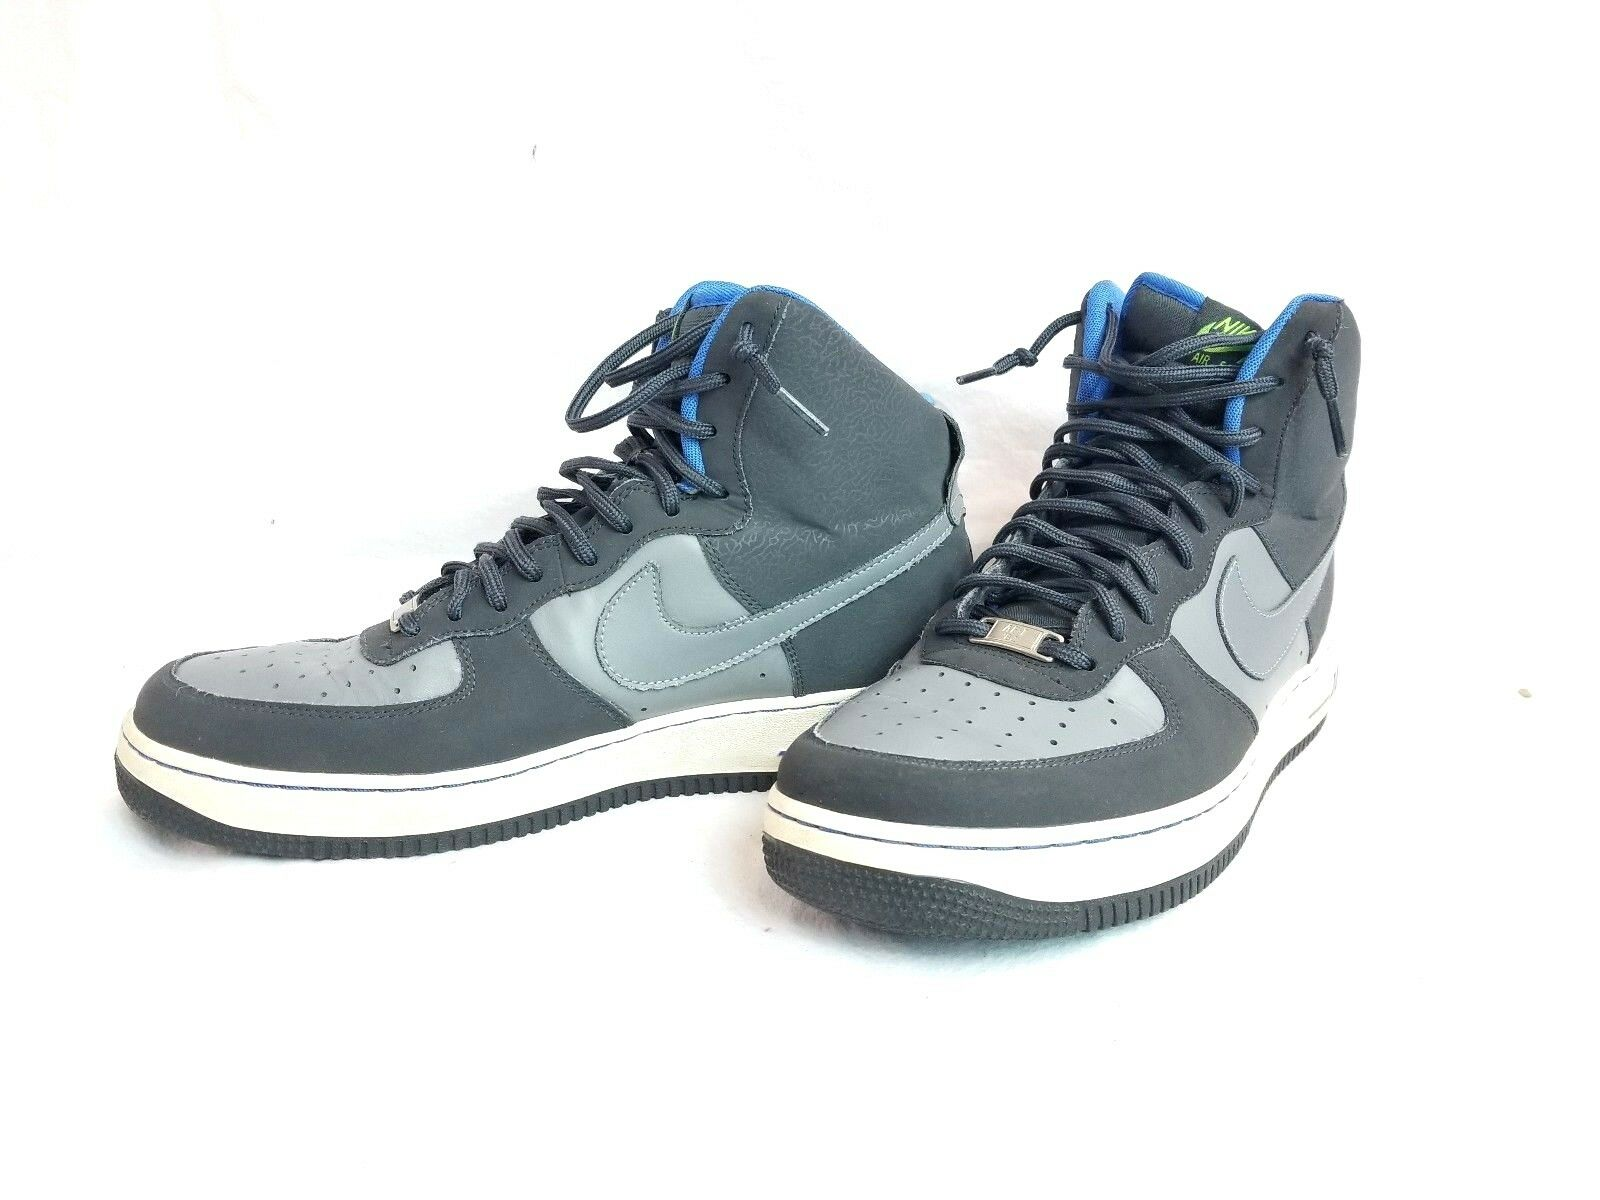 Nike Men's Air Force 1 Hi-Tops in Anthracite/ Cool Grey 315121-016 Size 11 EUC